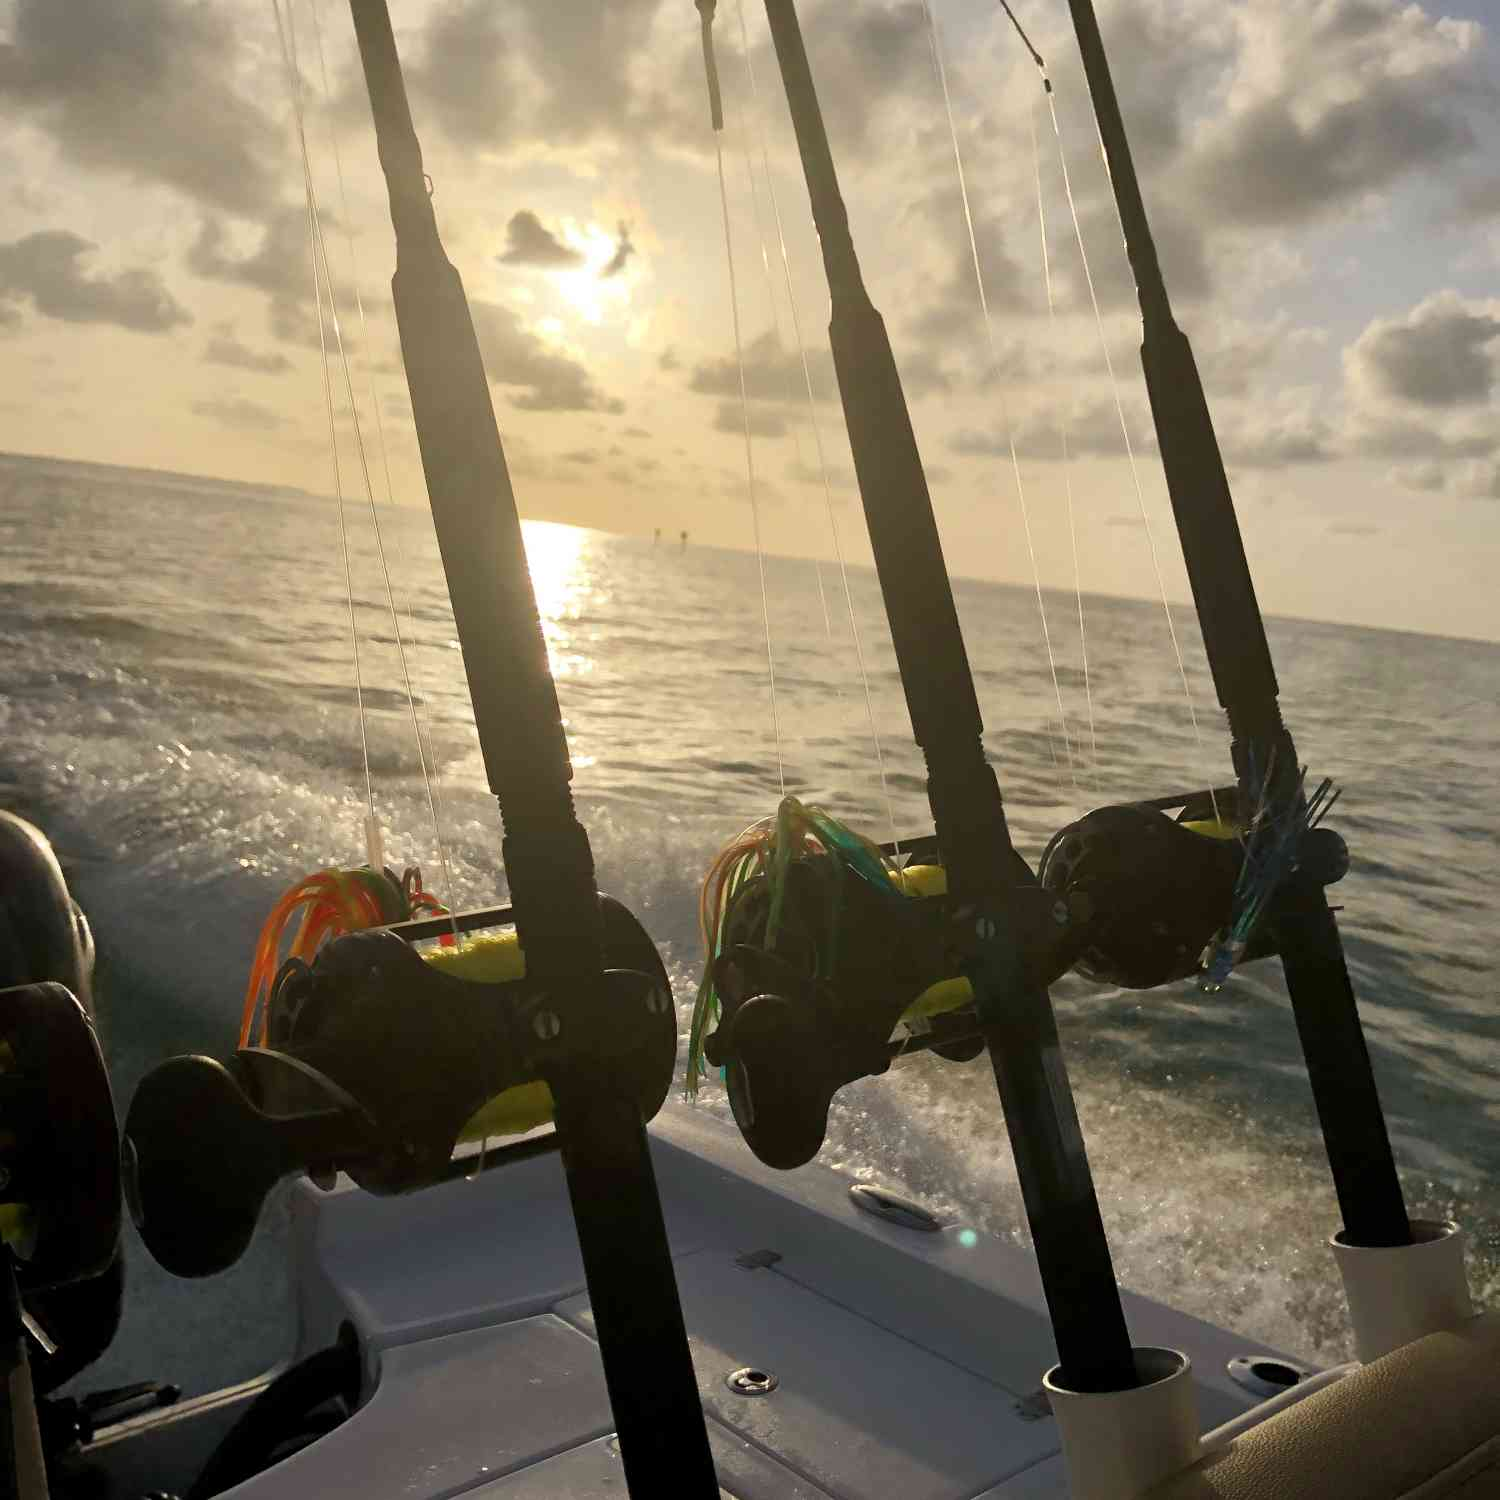 Title: Good Morning Marathon!! - On board their Sportsman Masters 247 Bay Boat - Location: Marathon, FL. Participating in the Photo Contest #SportsmanJanuary2020